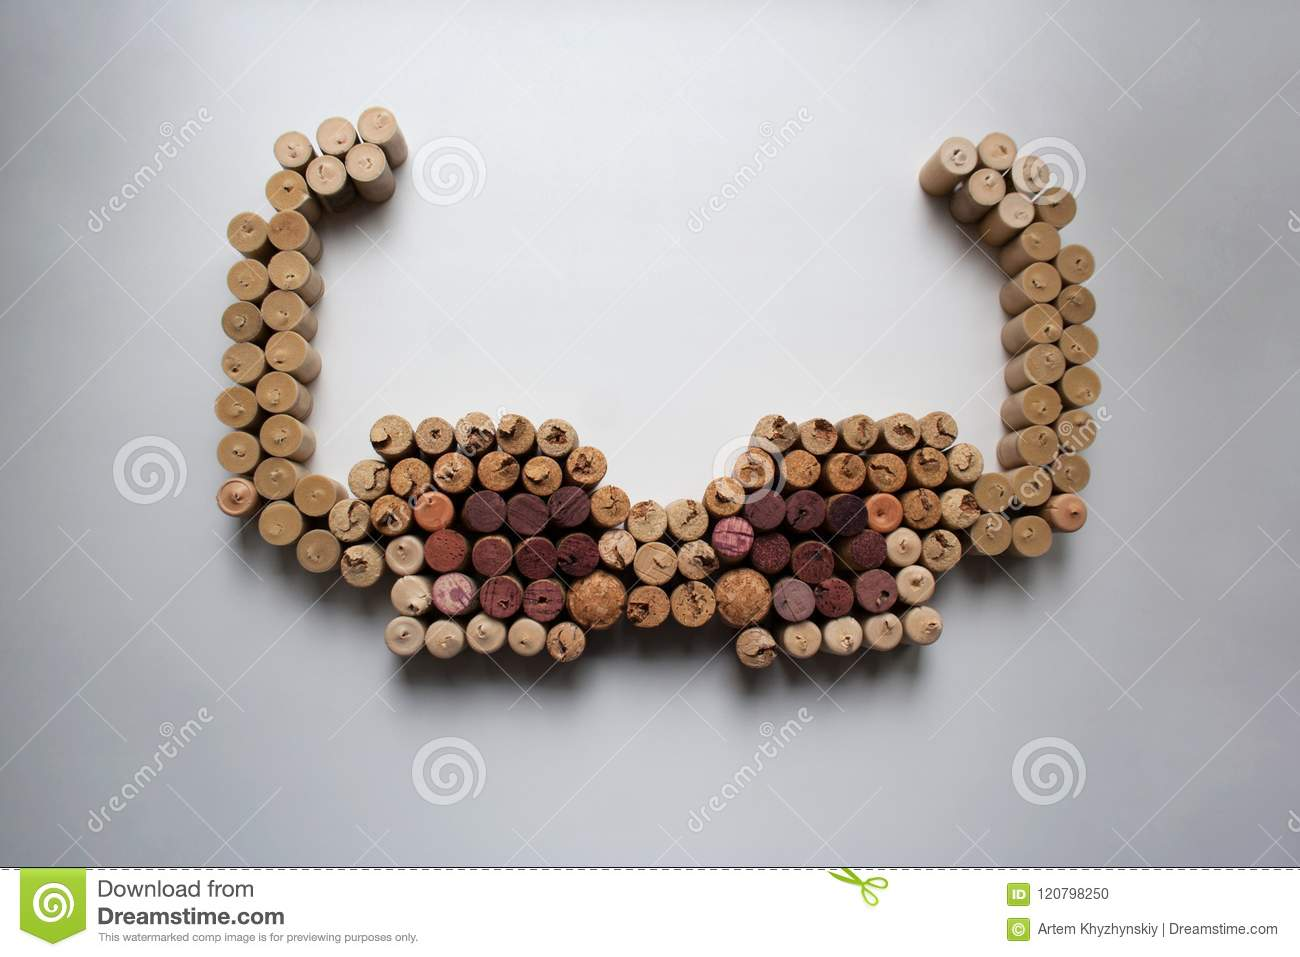 09a71d9a2ed382 Wine Corks Sunglasses Silhouette From Above Stock Photo - Image of ...